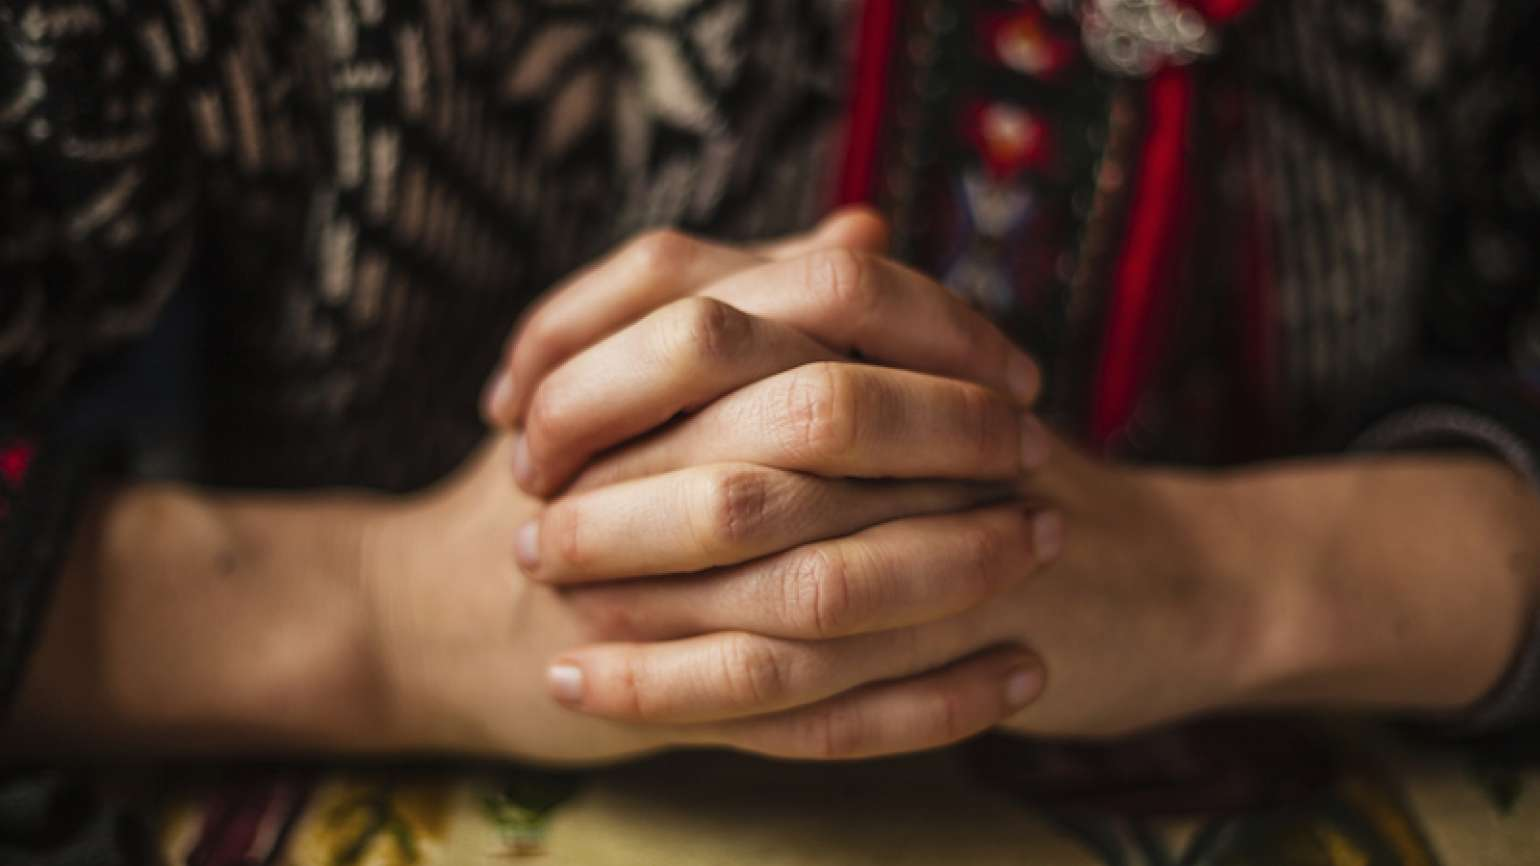 A prayer that pushes us. Photo lofilolo, Thinkstock.